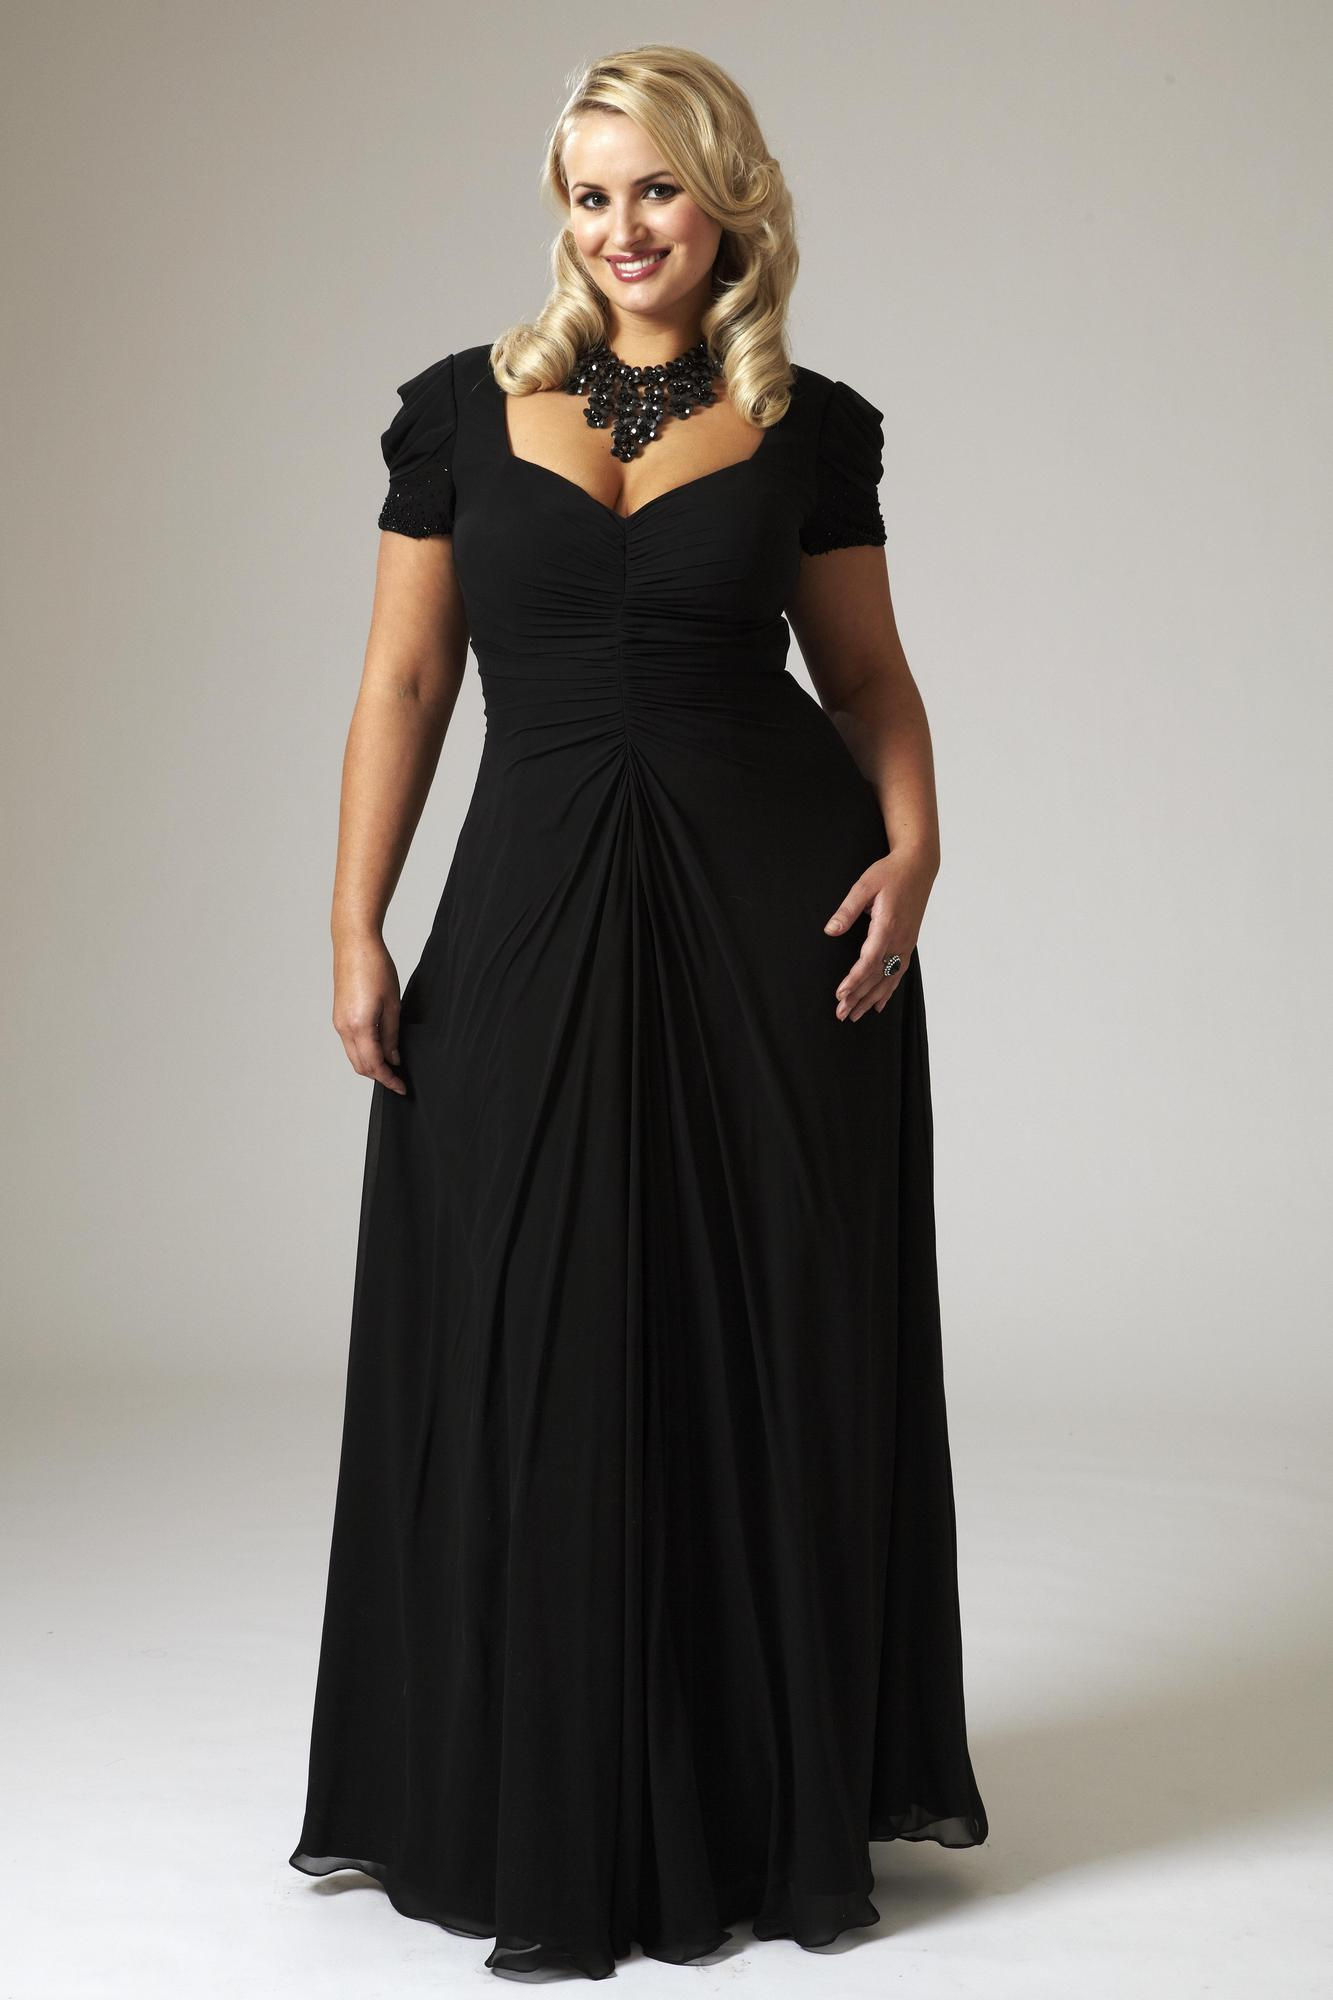 Stunning Plus Size Womens Formal Wear Pictures - Mikejaninesmith ...